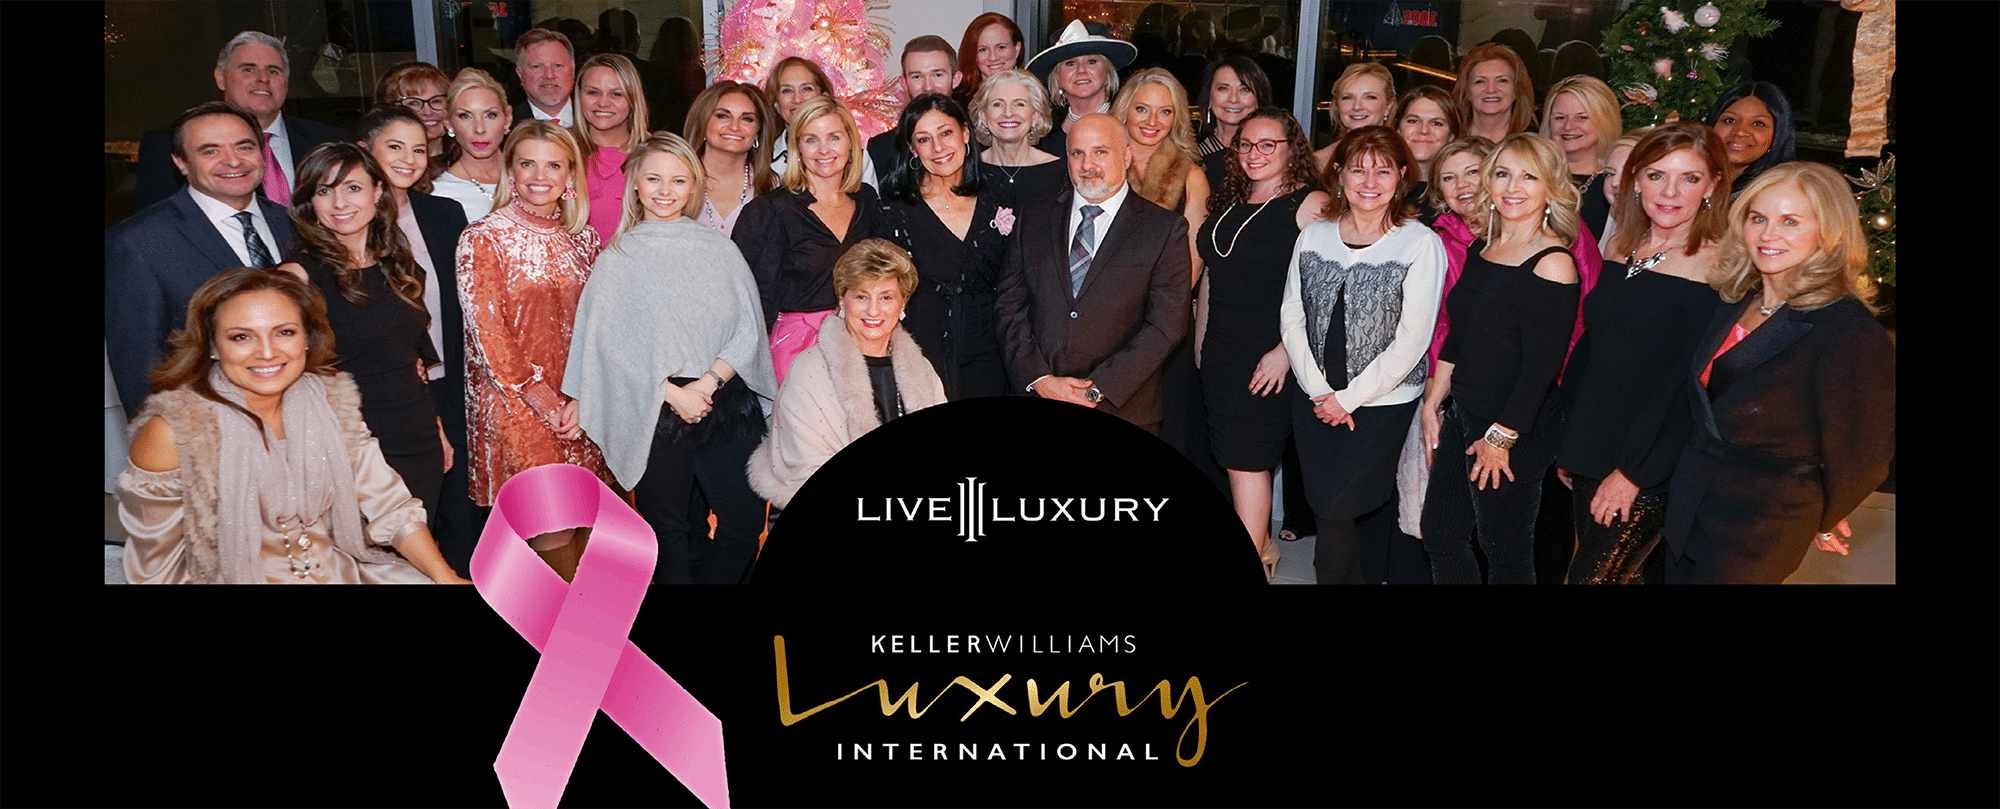 Keller Williams Live Luxury Supports Breast Cancer Awareness